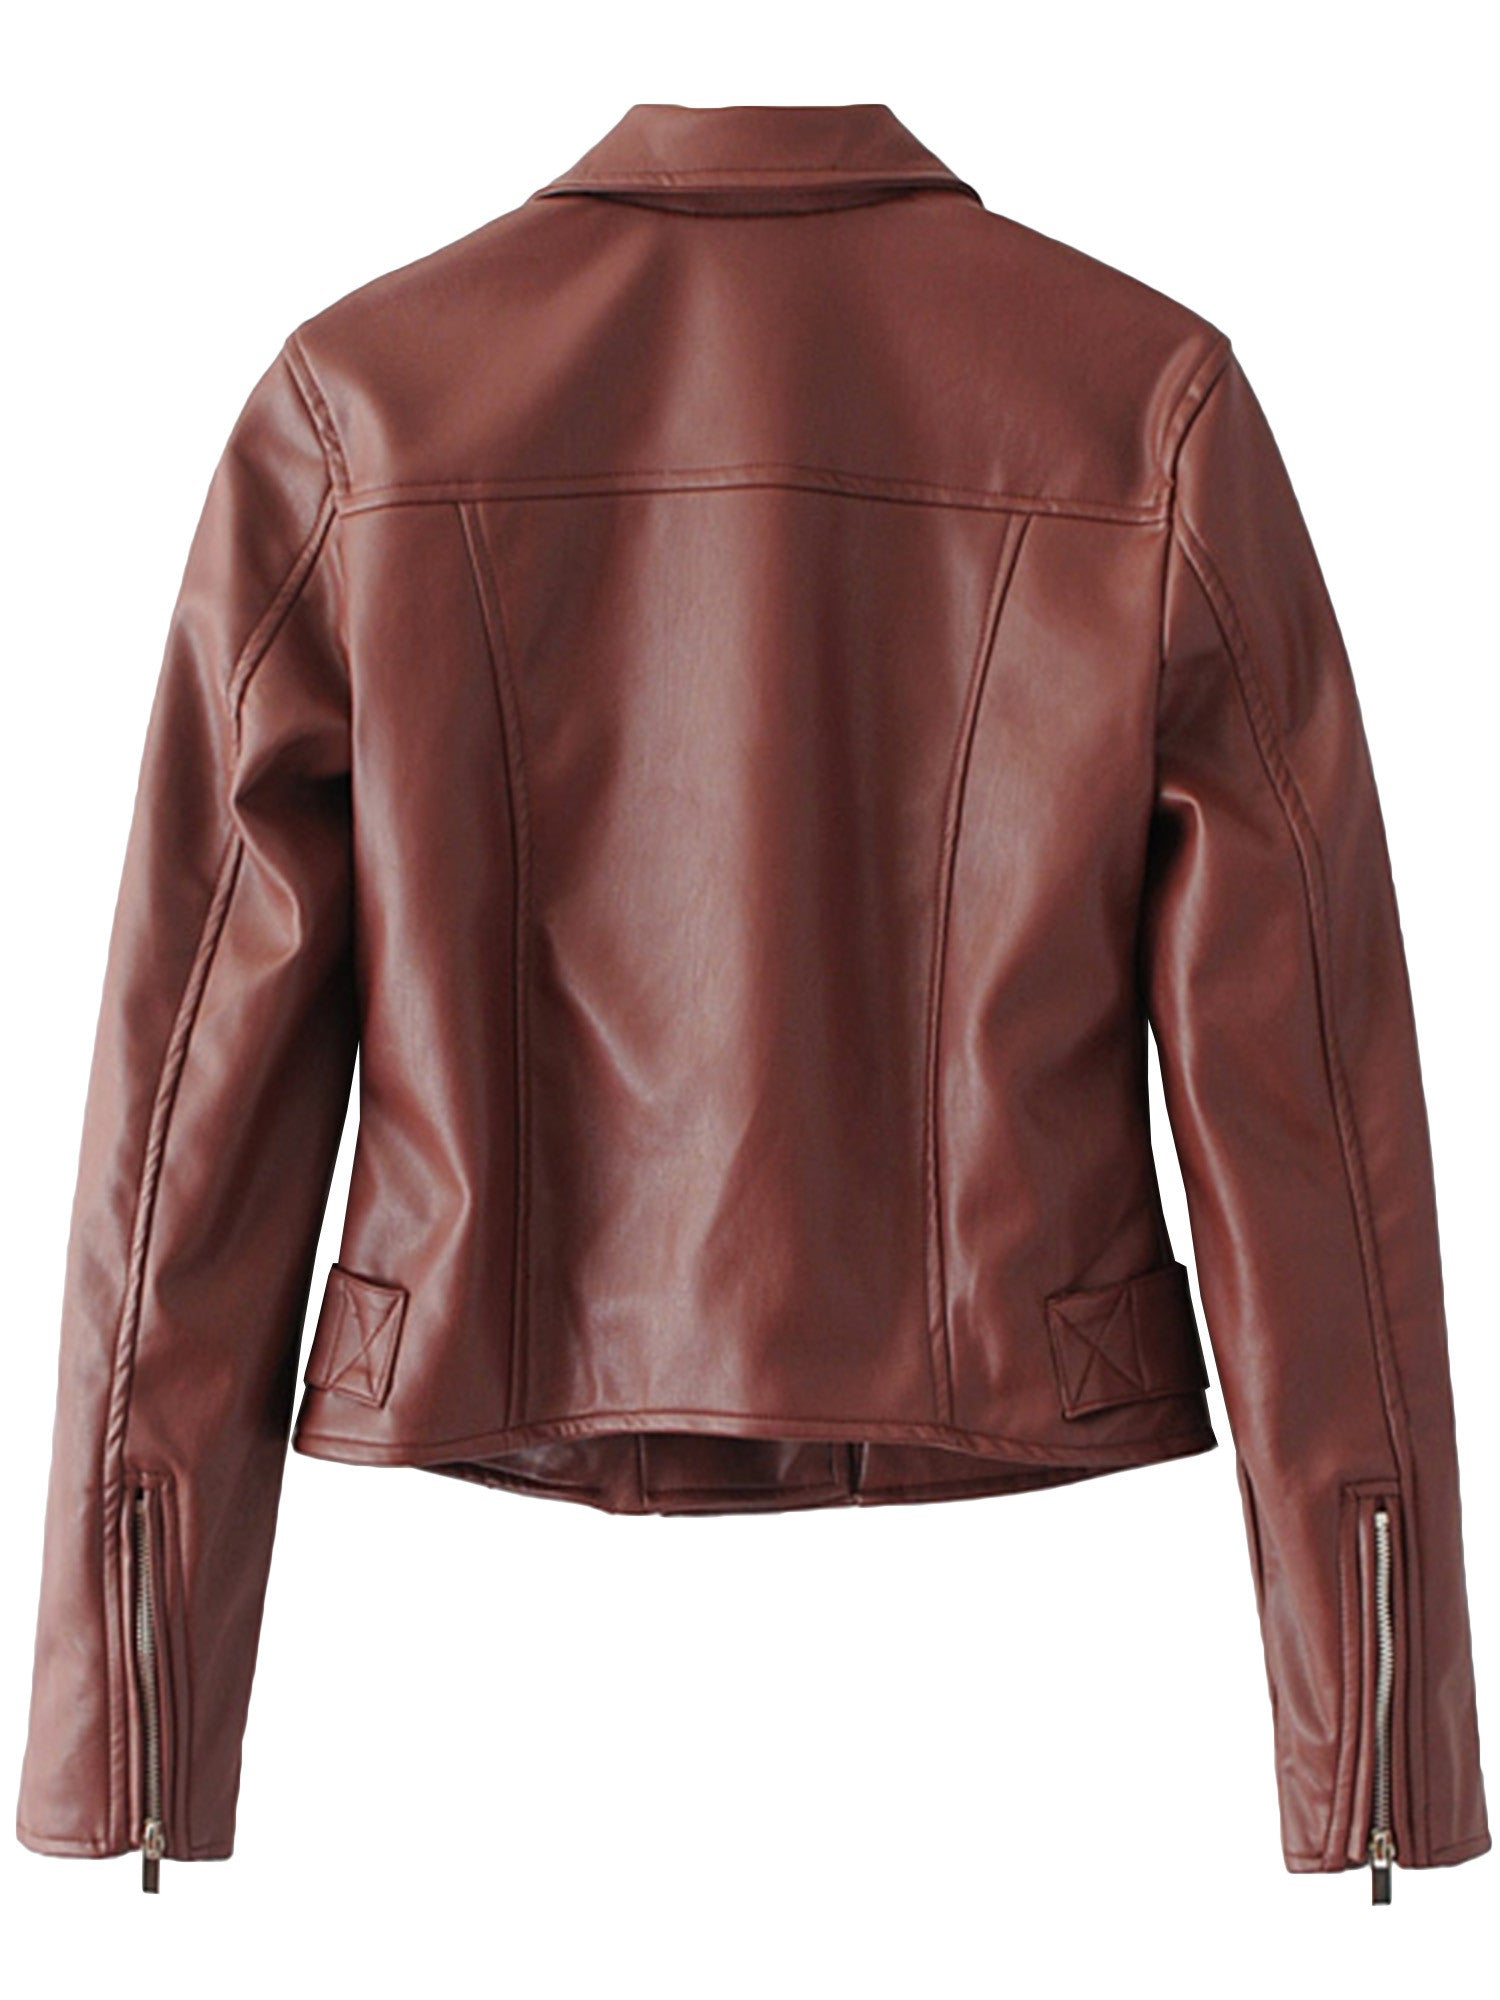 'Elanor' Zip Up Faux Leather Jacket (2 Colors Available)